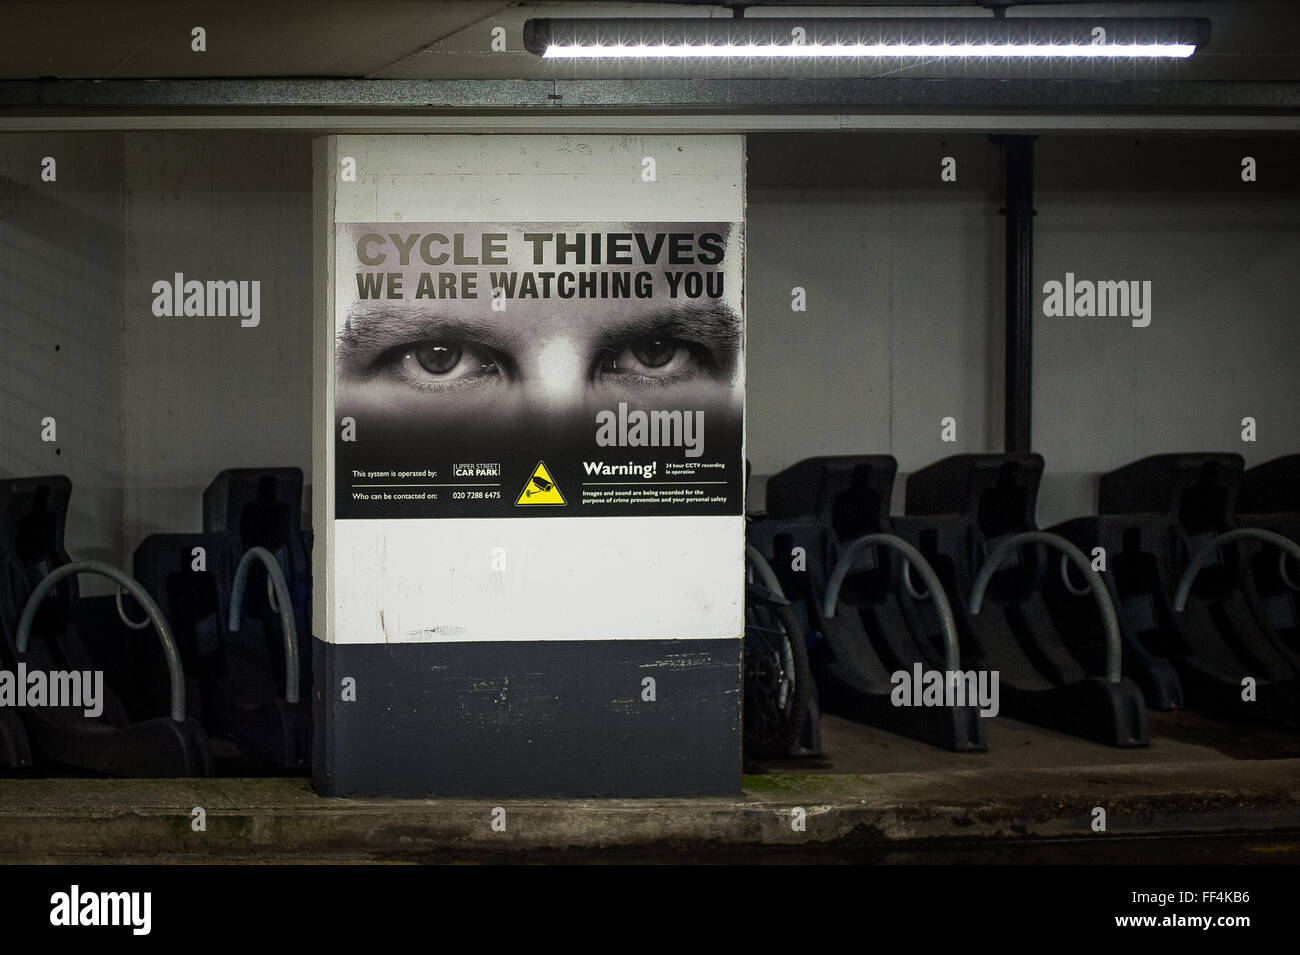 Warning to Cycle Thieves poster in underground car park, London, UK - Stock Image